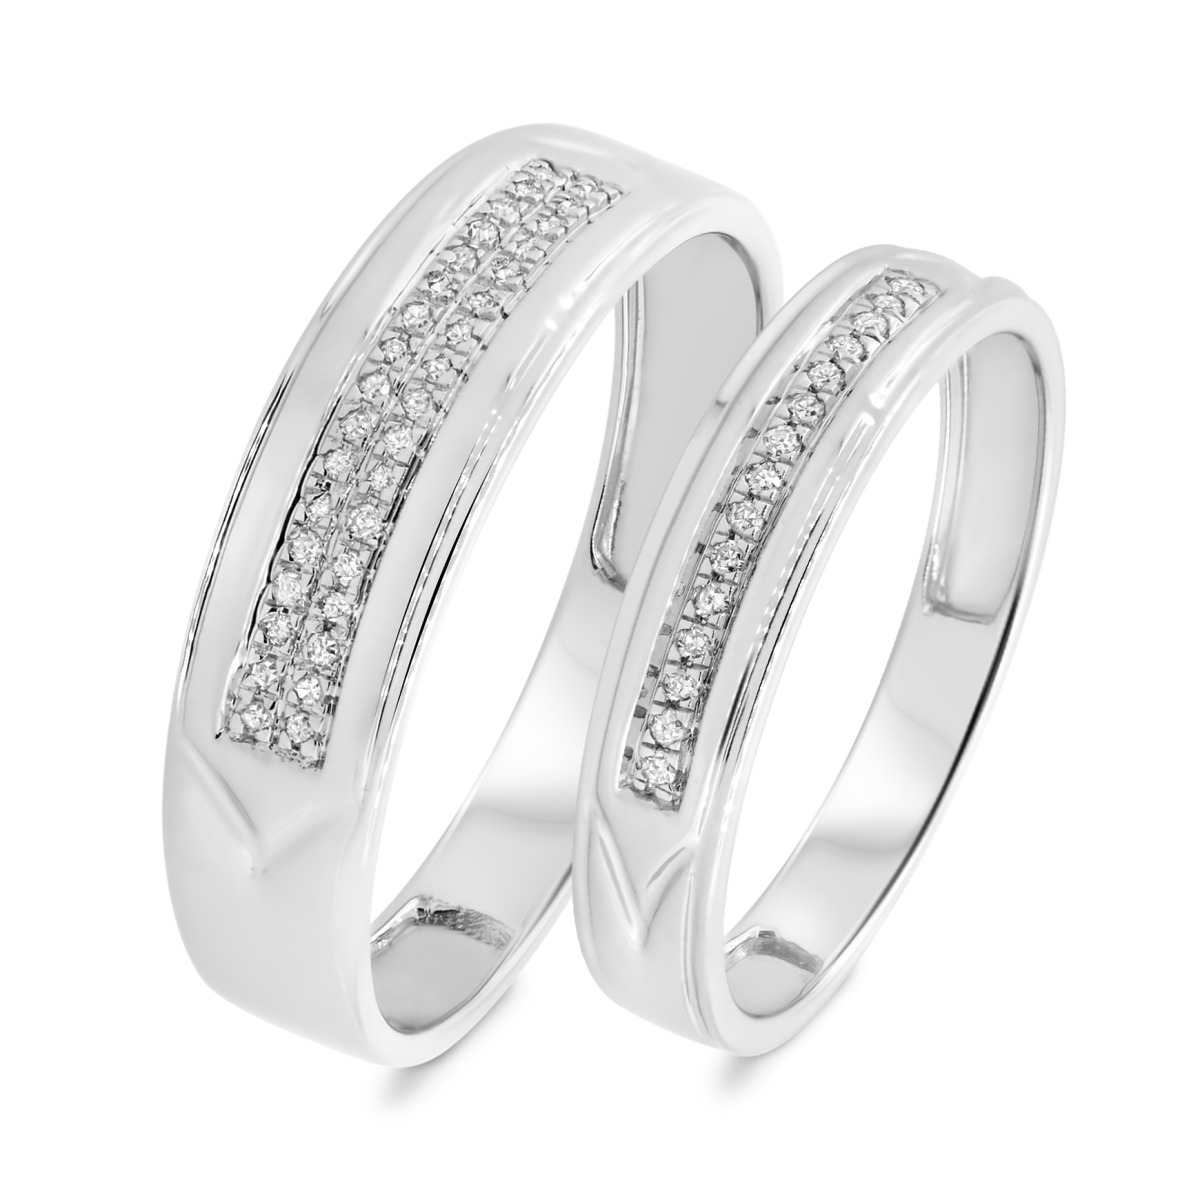 1/8 CT. T.W. Diamond Matching Wedding Band Set 10K White Gold